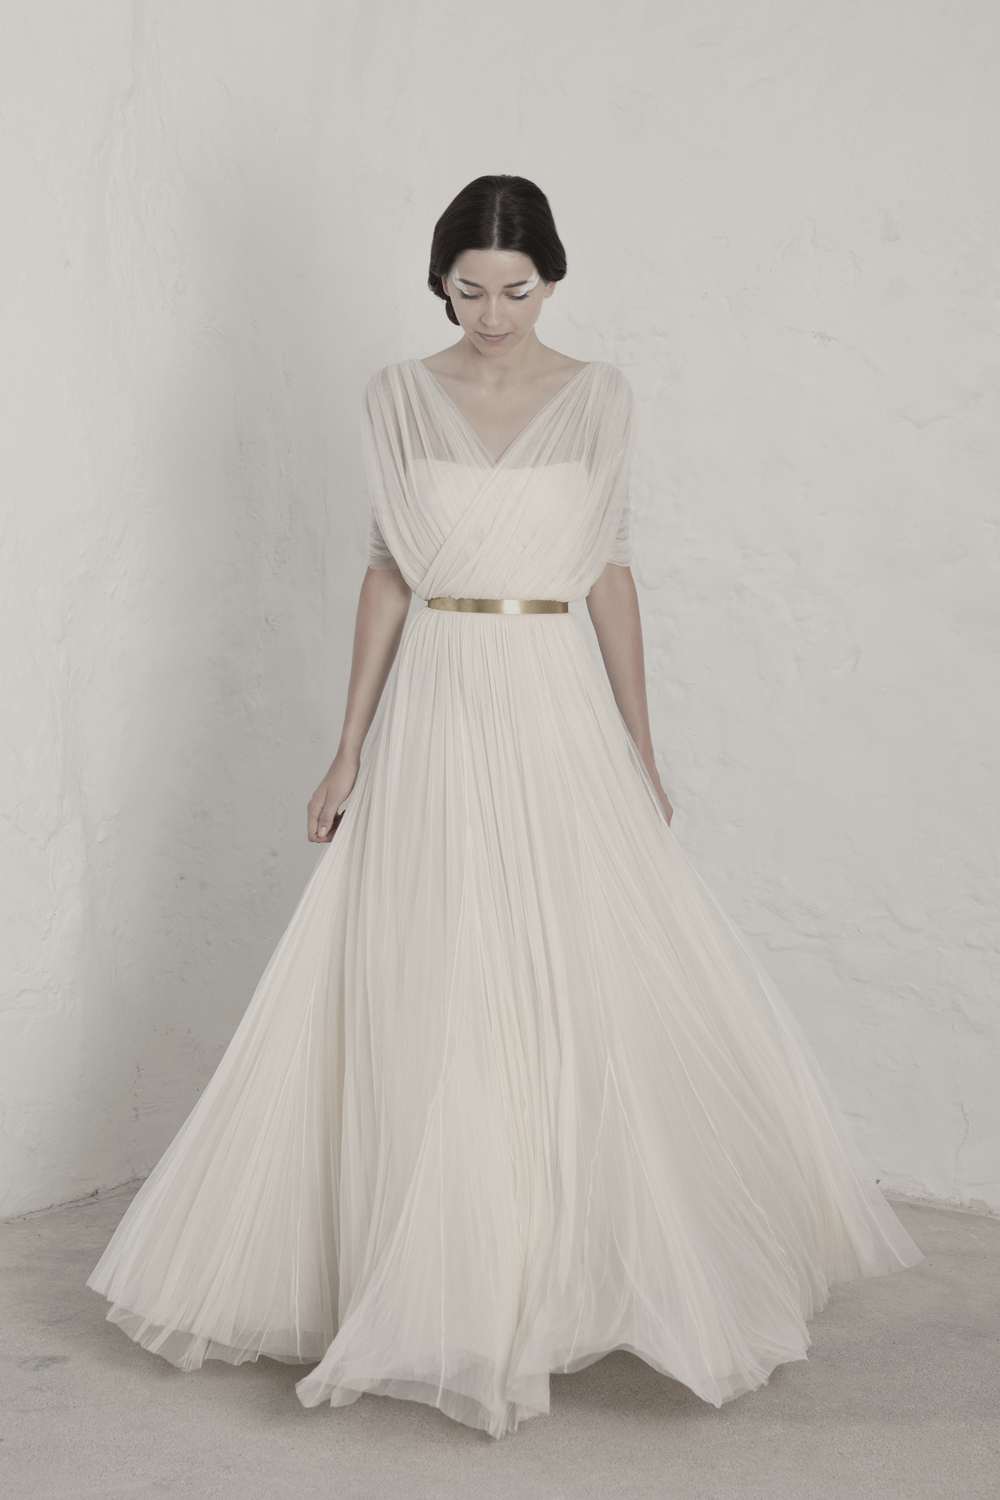 vestido novia cortana wedding planner barcelona paris berlin (6)